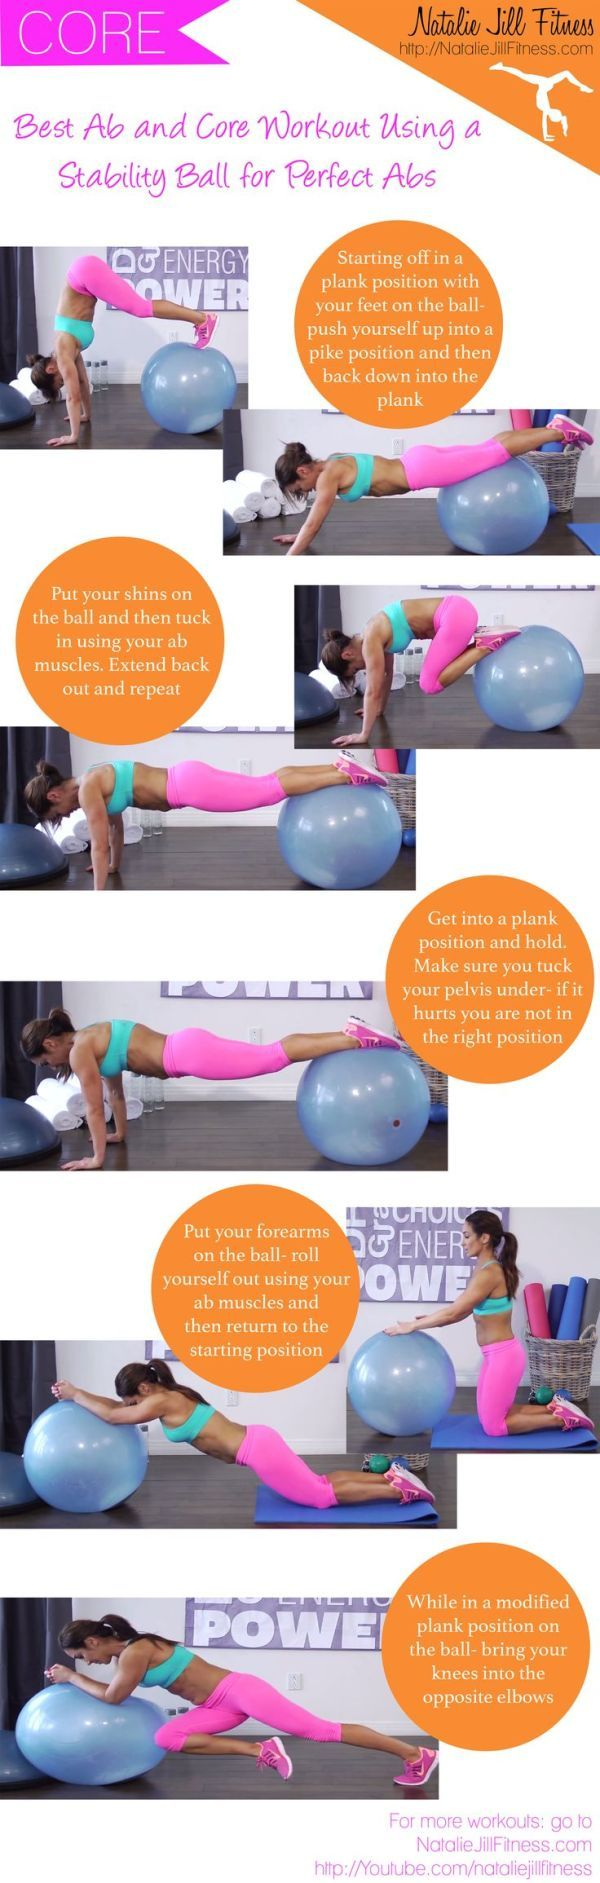 Stability ball workout for the core